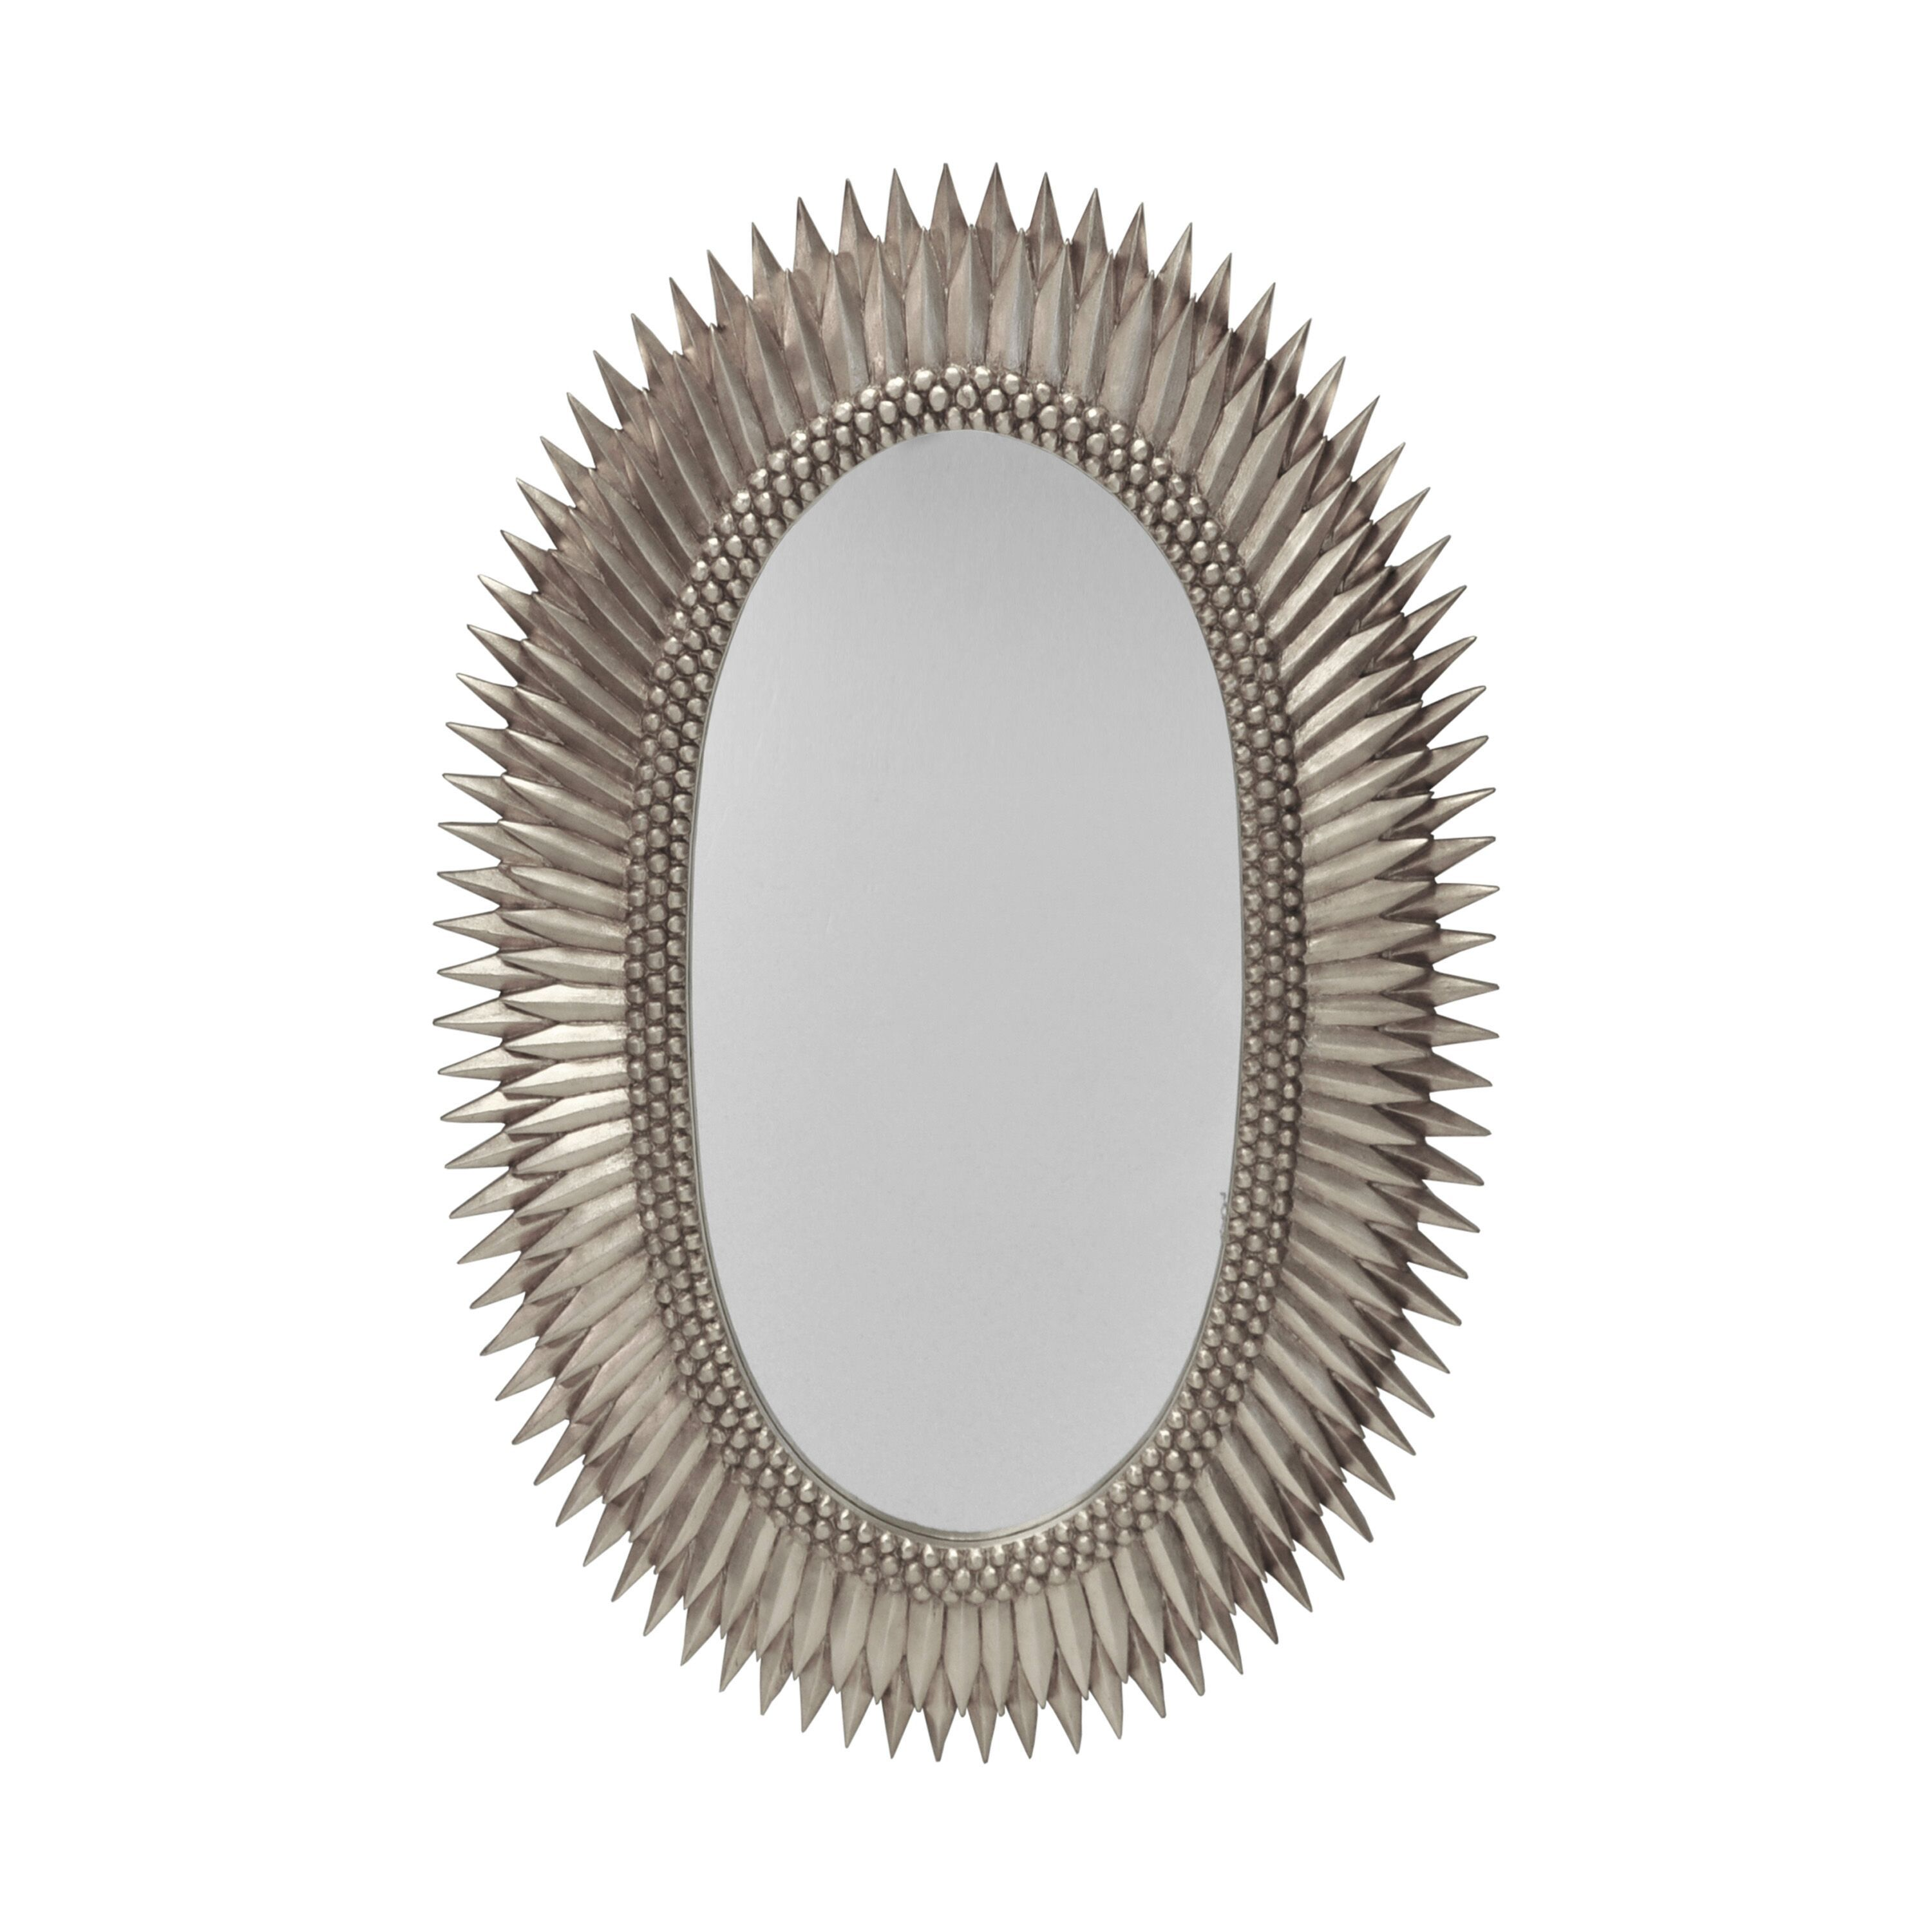 Rita Silver Oval Wall Mirror by Worlds Away